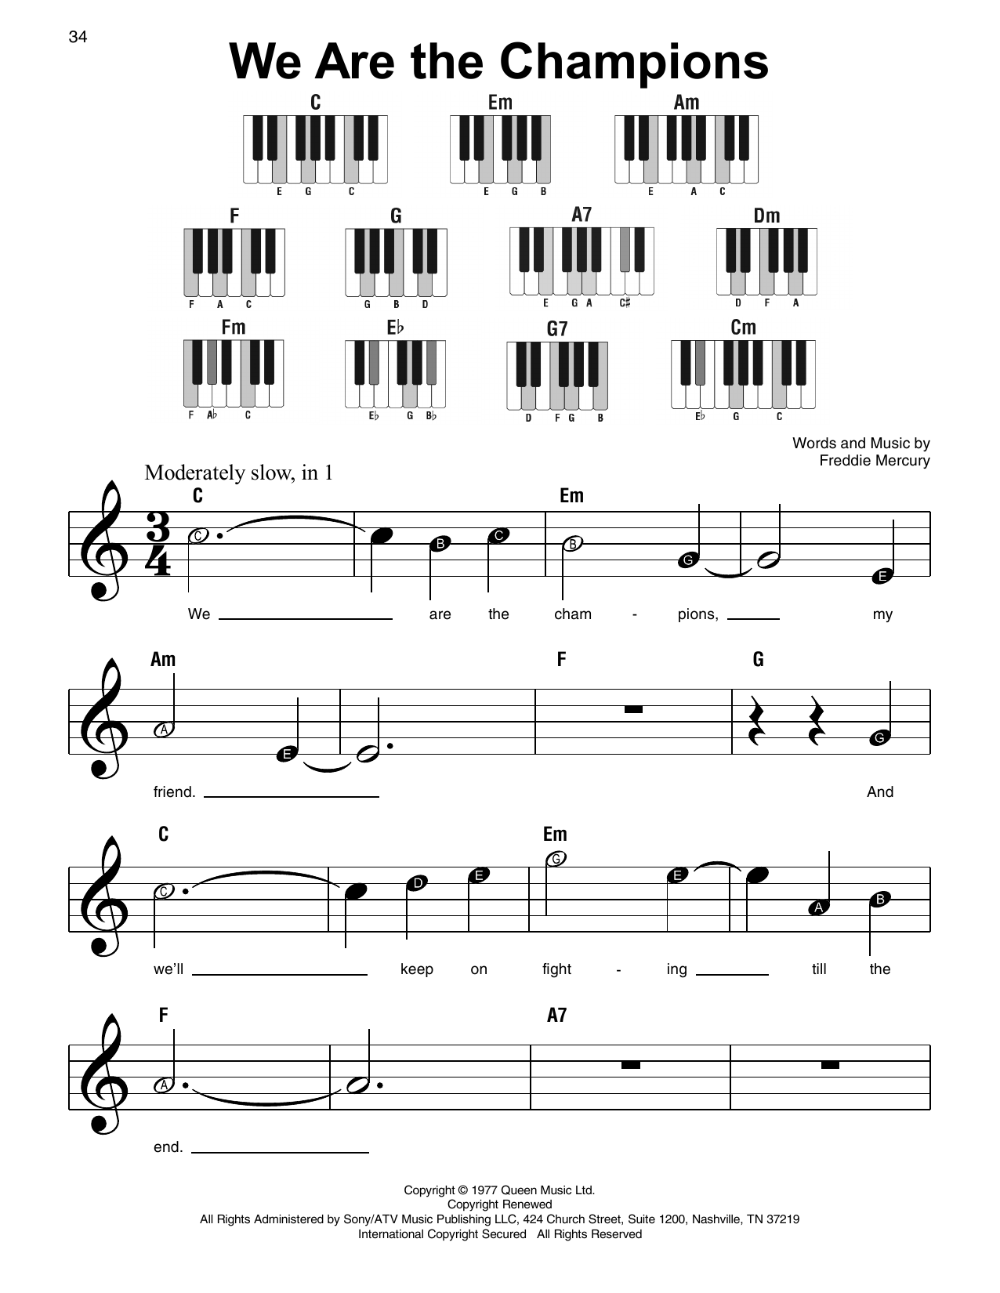 we are the champions sheet music | queen | super easy piano | easy piano  sheet music, sheet music, piano sheet music free  pinterest